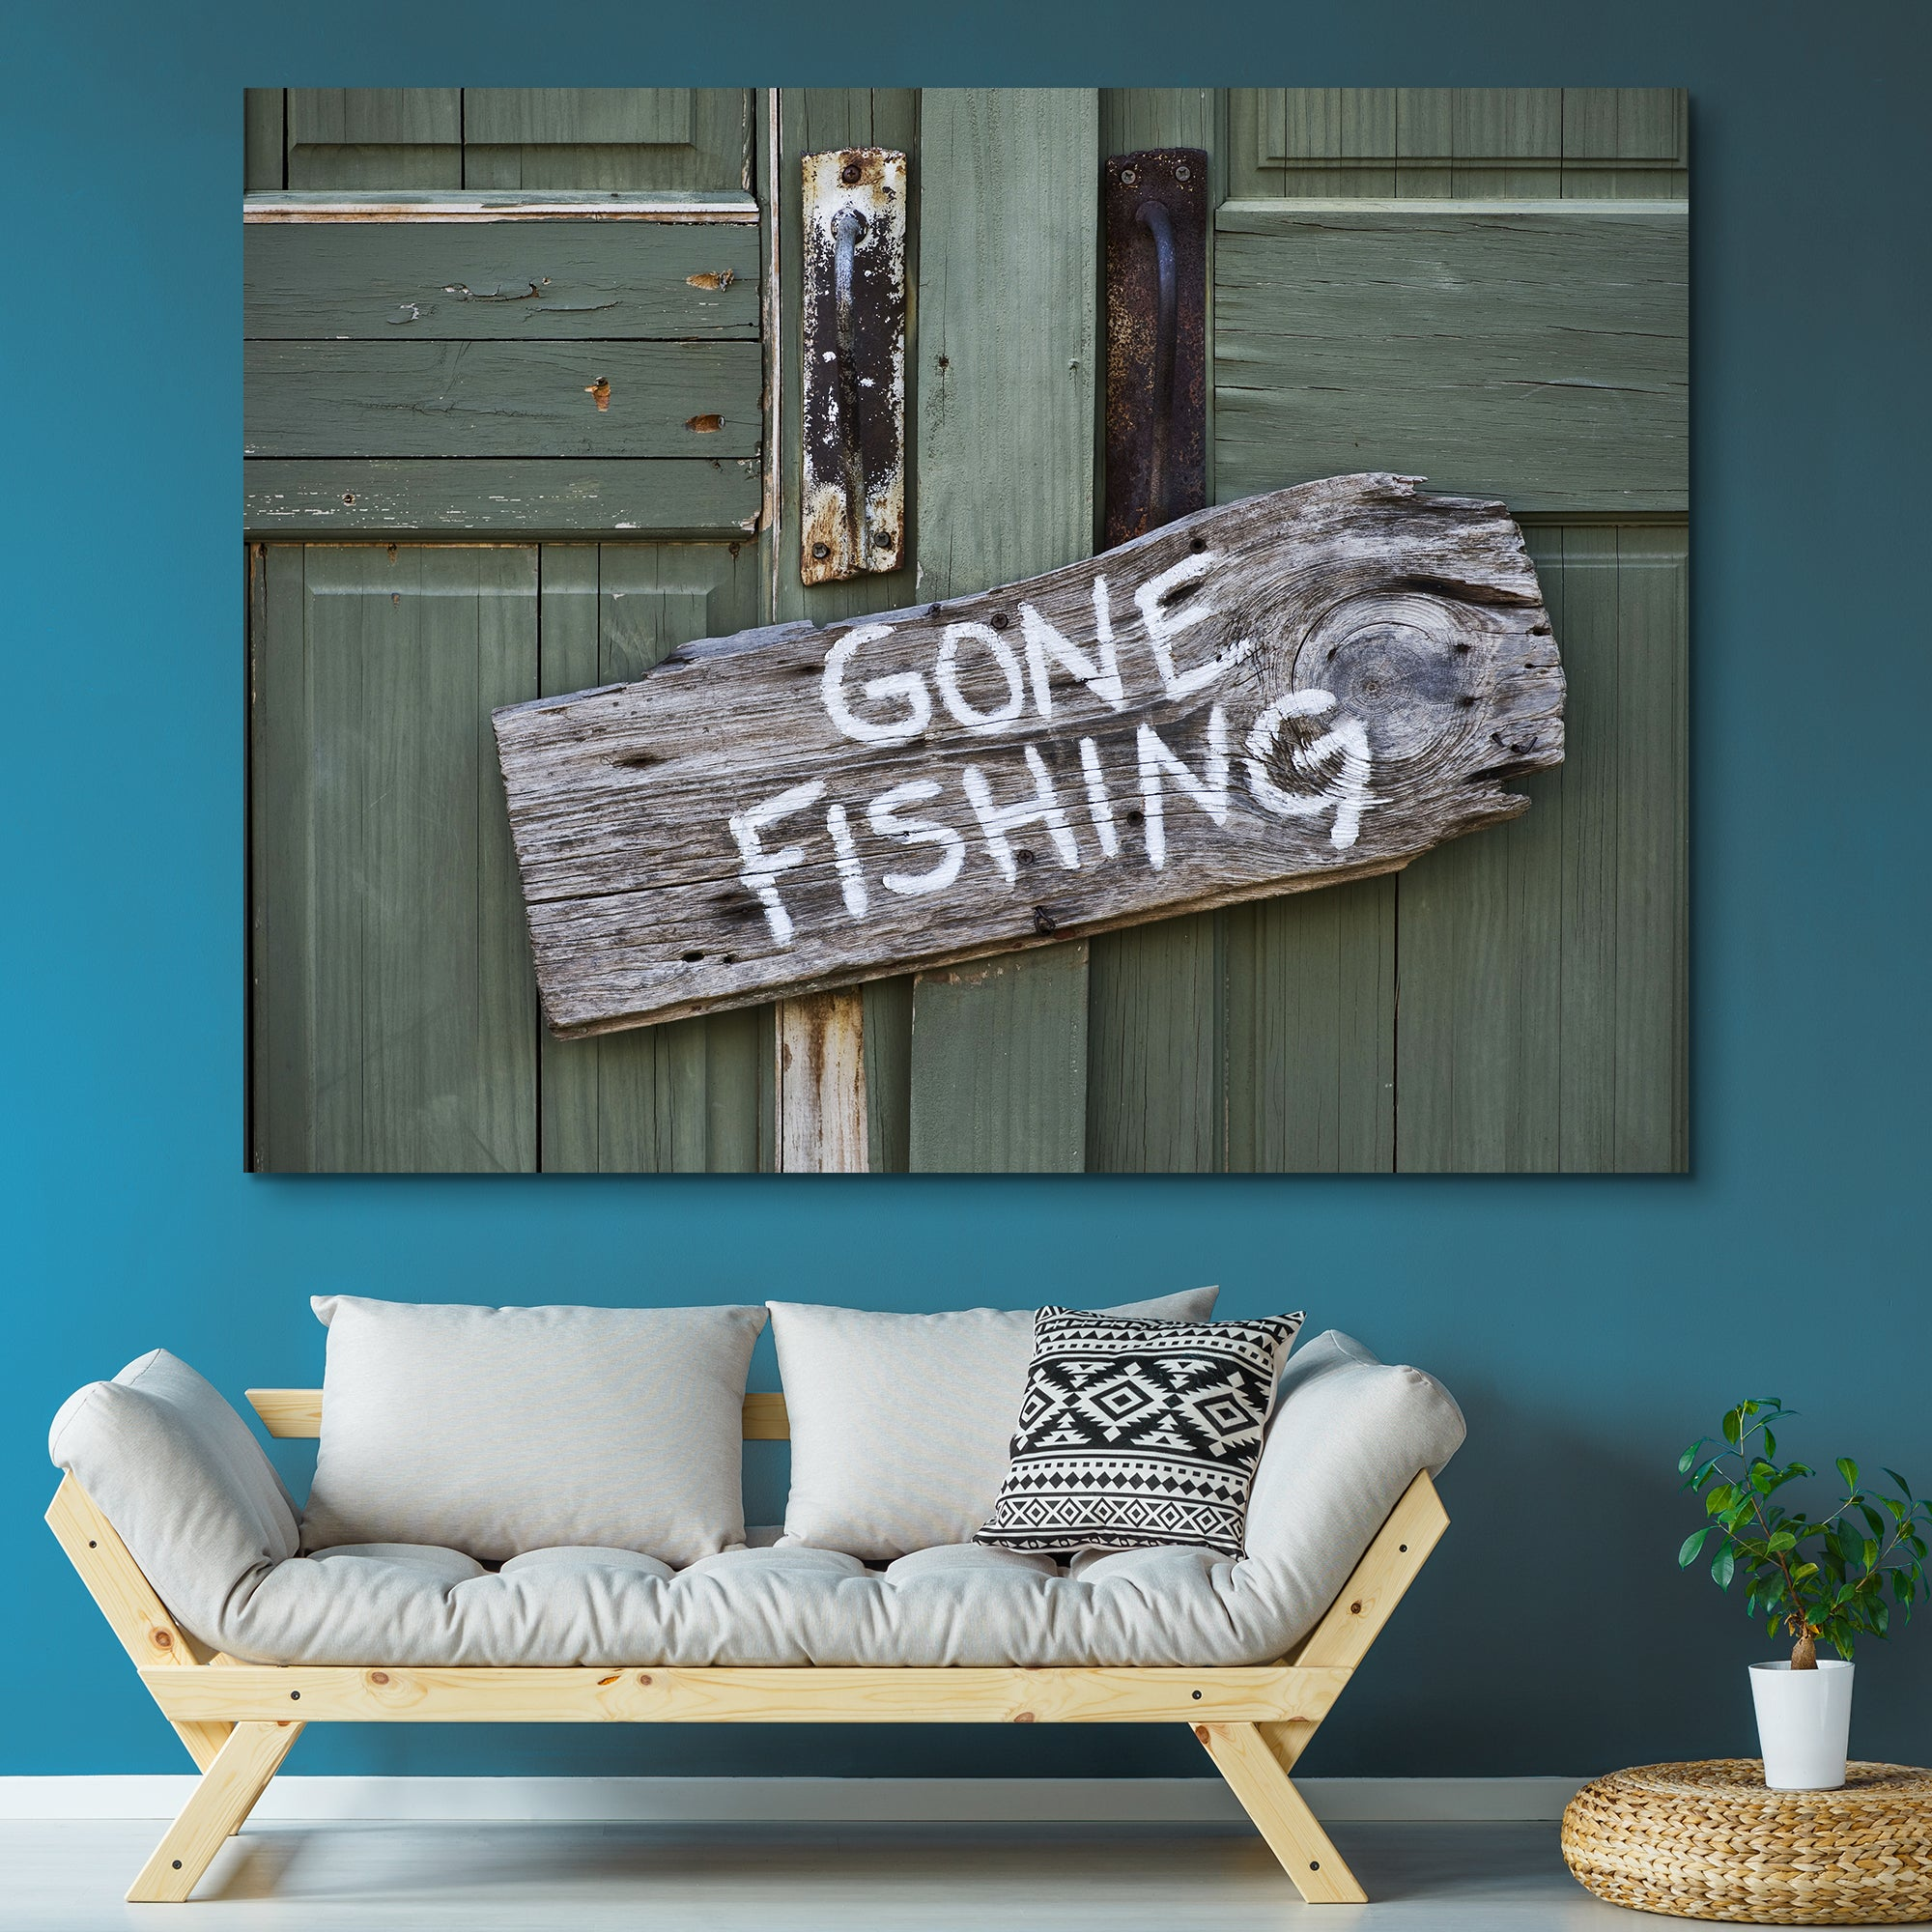 Gone Fishing wall art